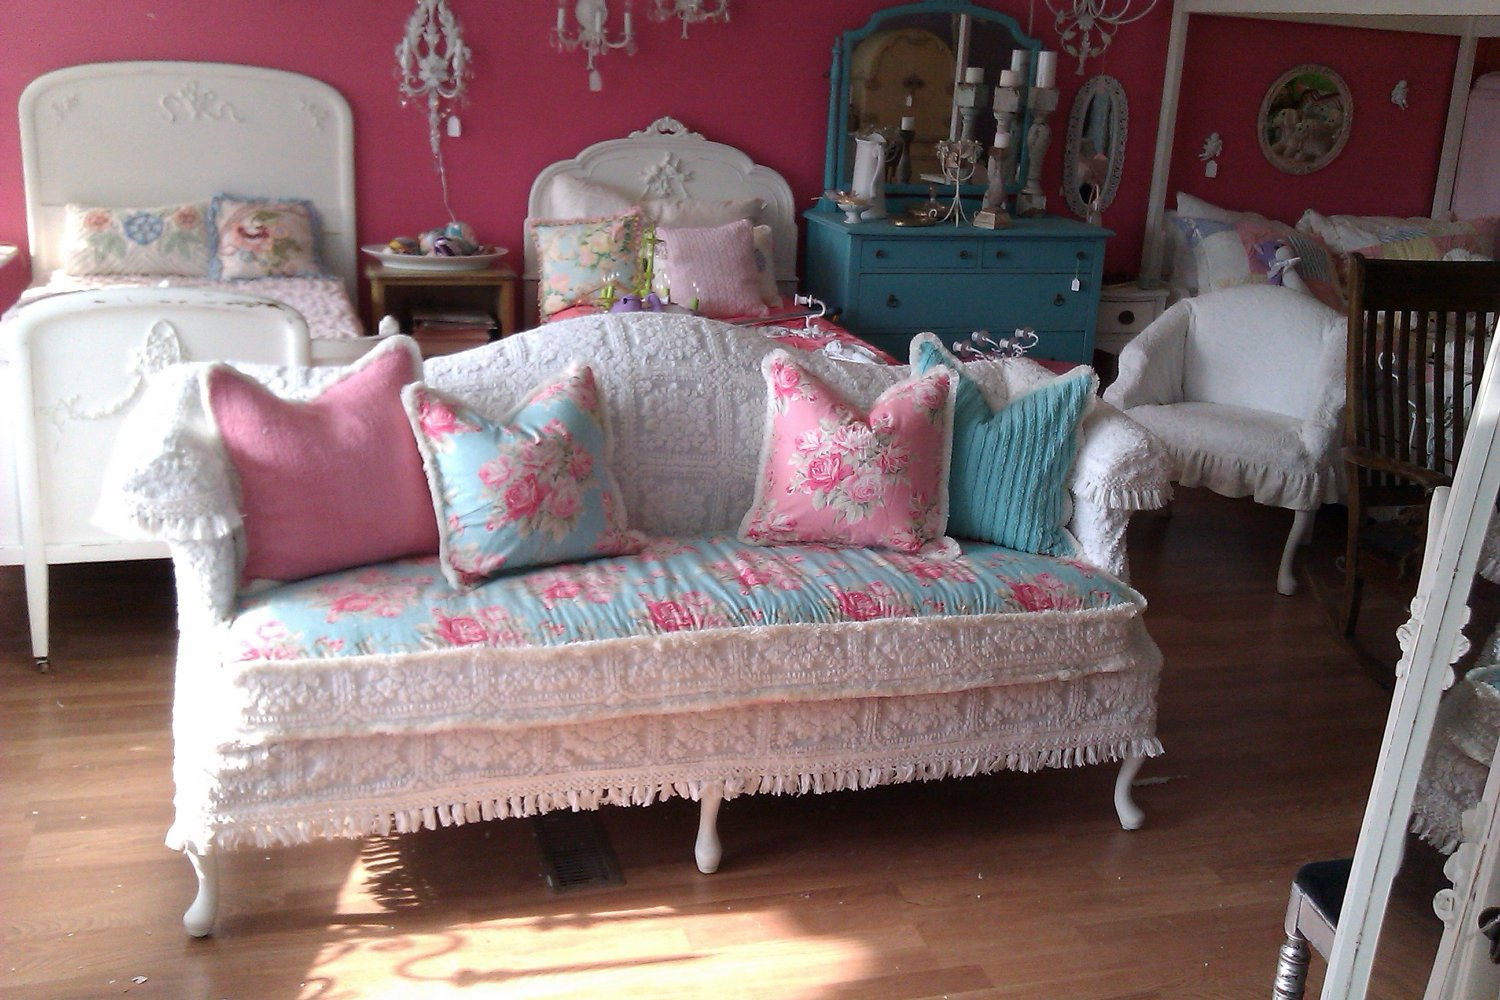 Best ideas about Shabby Chic Loveseat . Save or Pin shabby chic sofa couch chenille bedspread by Now.